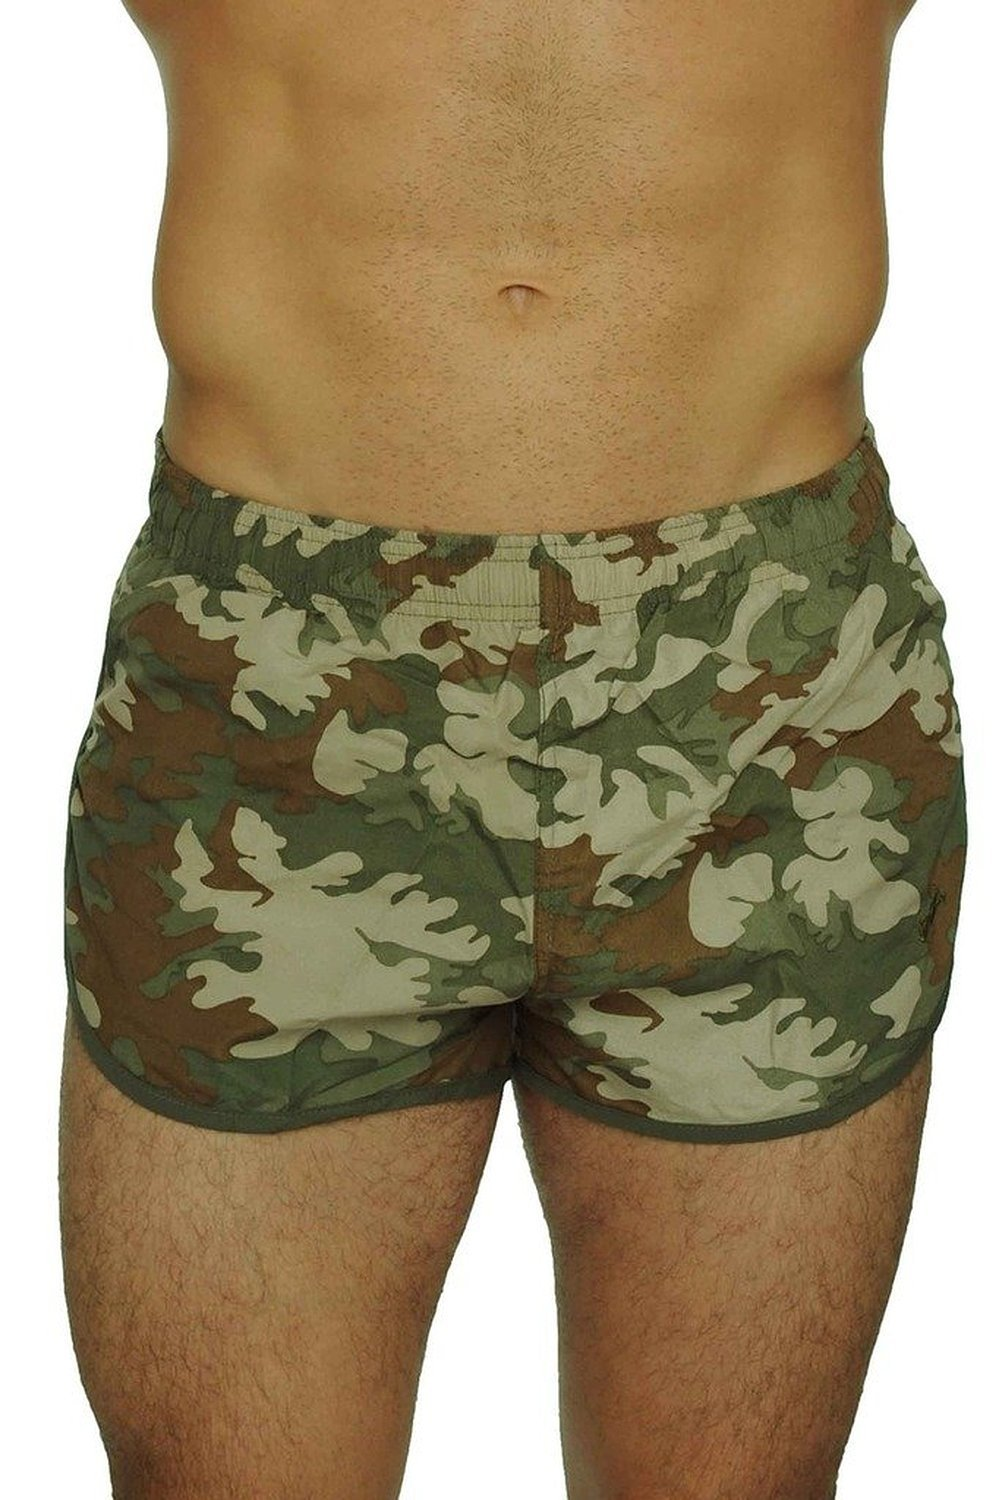 UZZI Men's Basic Running Shorts Swimwear Trunks 1830 Camo Olive XL by UZZI